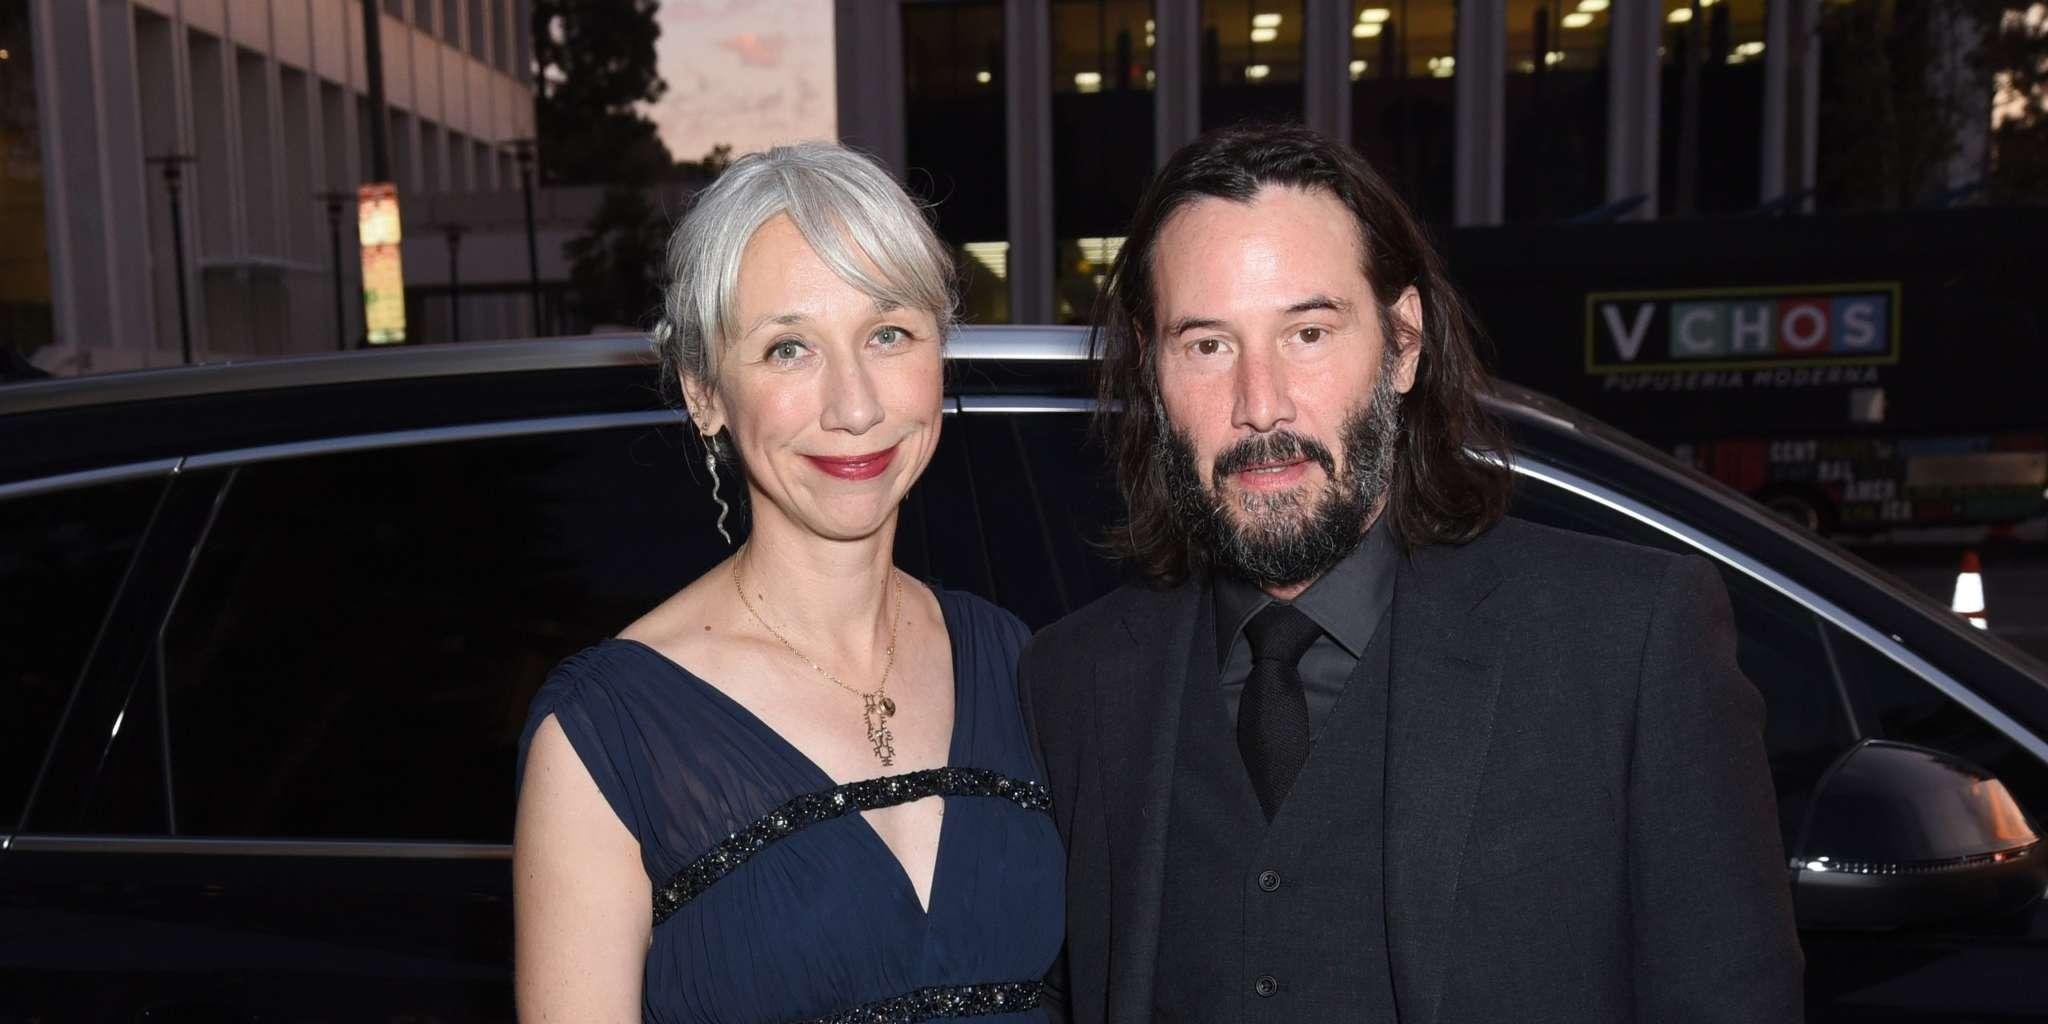 Alexandra Grant Opens Up About Her Keanu Reeves Romance And People Freaking Out - 'Every Single Person I Knew Called Me'